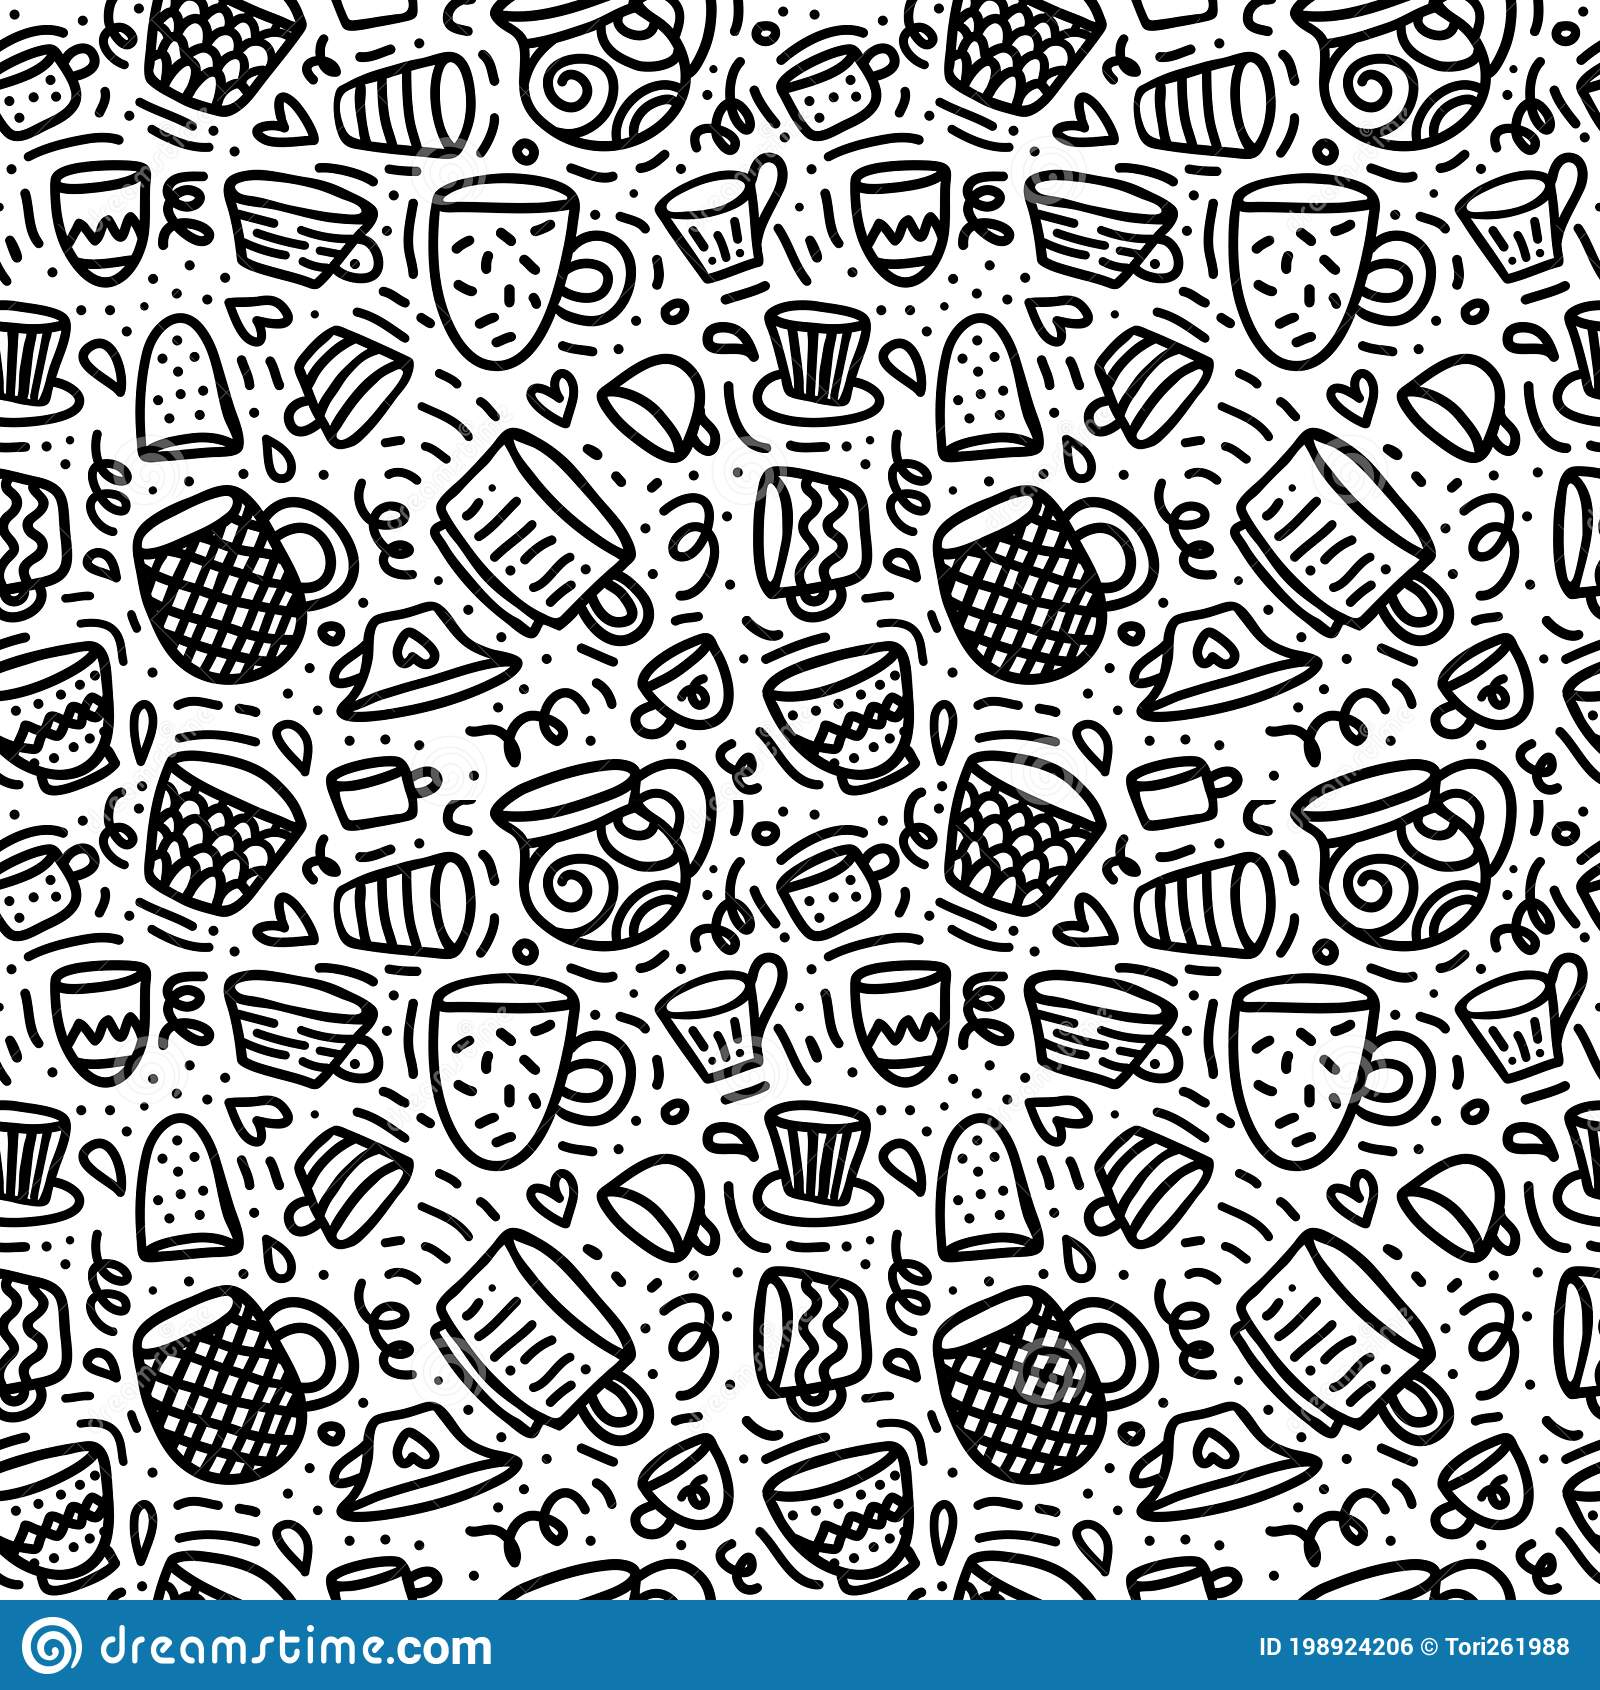 Seamless Doodle Pattern With Cups And Mugs For Coffee Or Tee Time Black Hand Drawn Line Art On White Background Stock Vector Illustration Of Modern Aroma 198924206